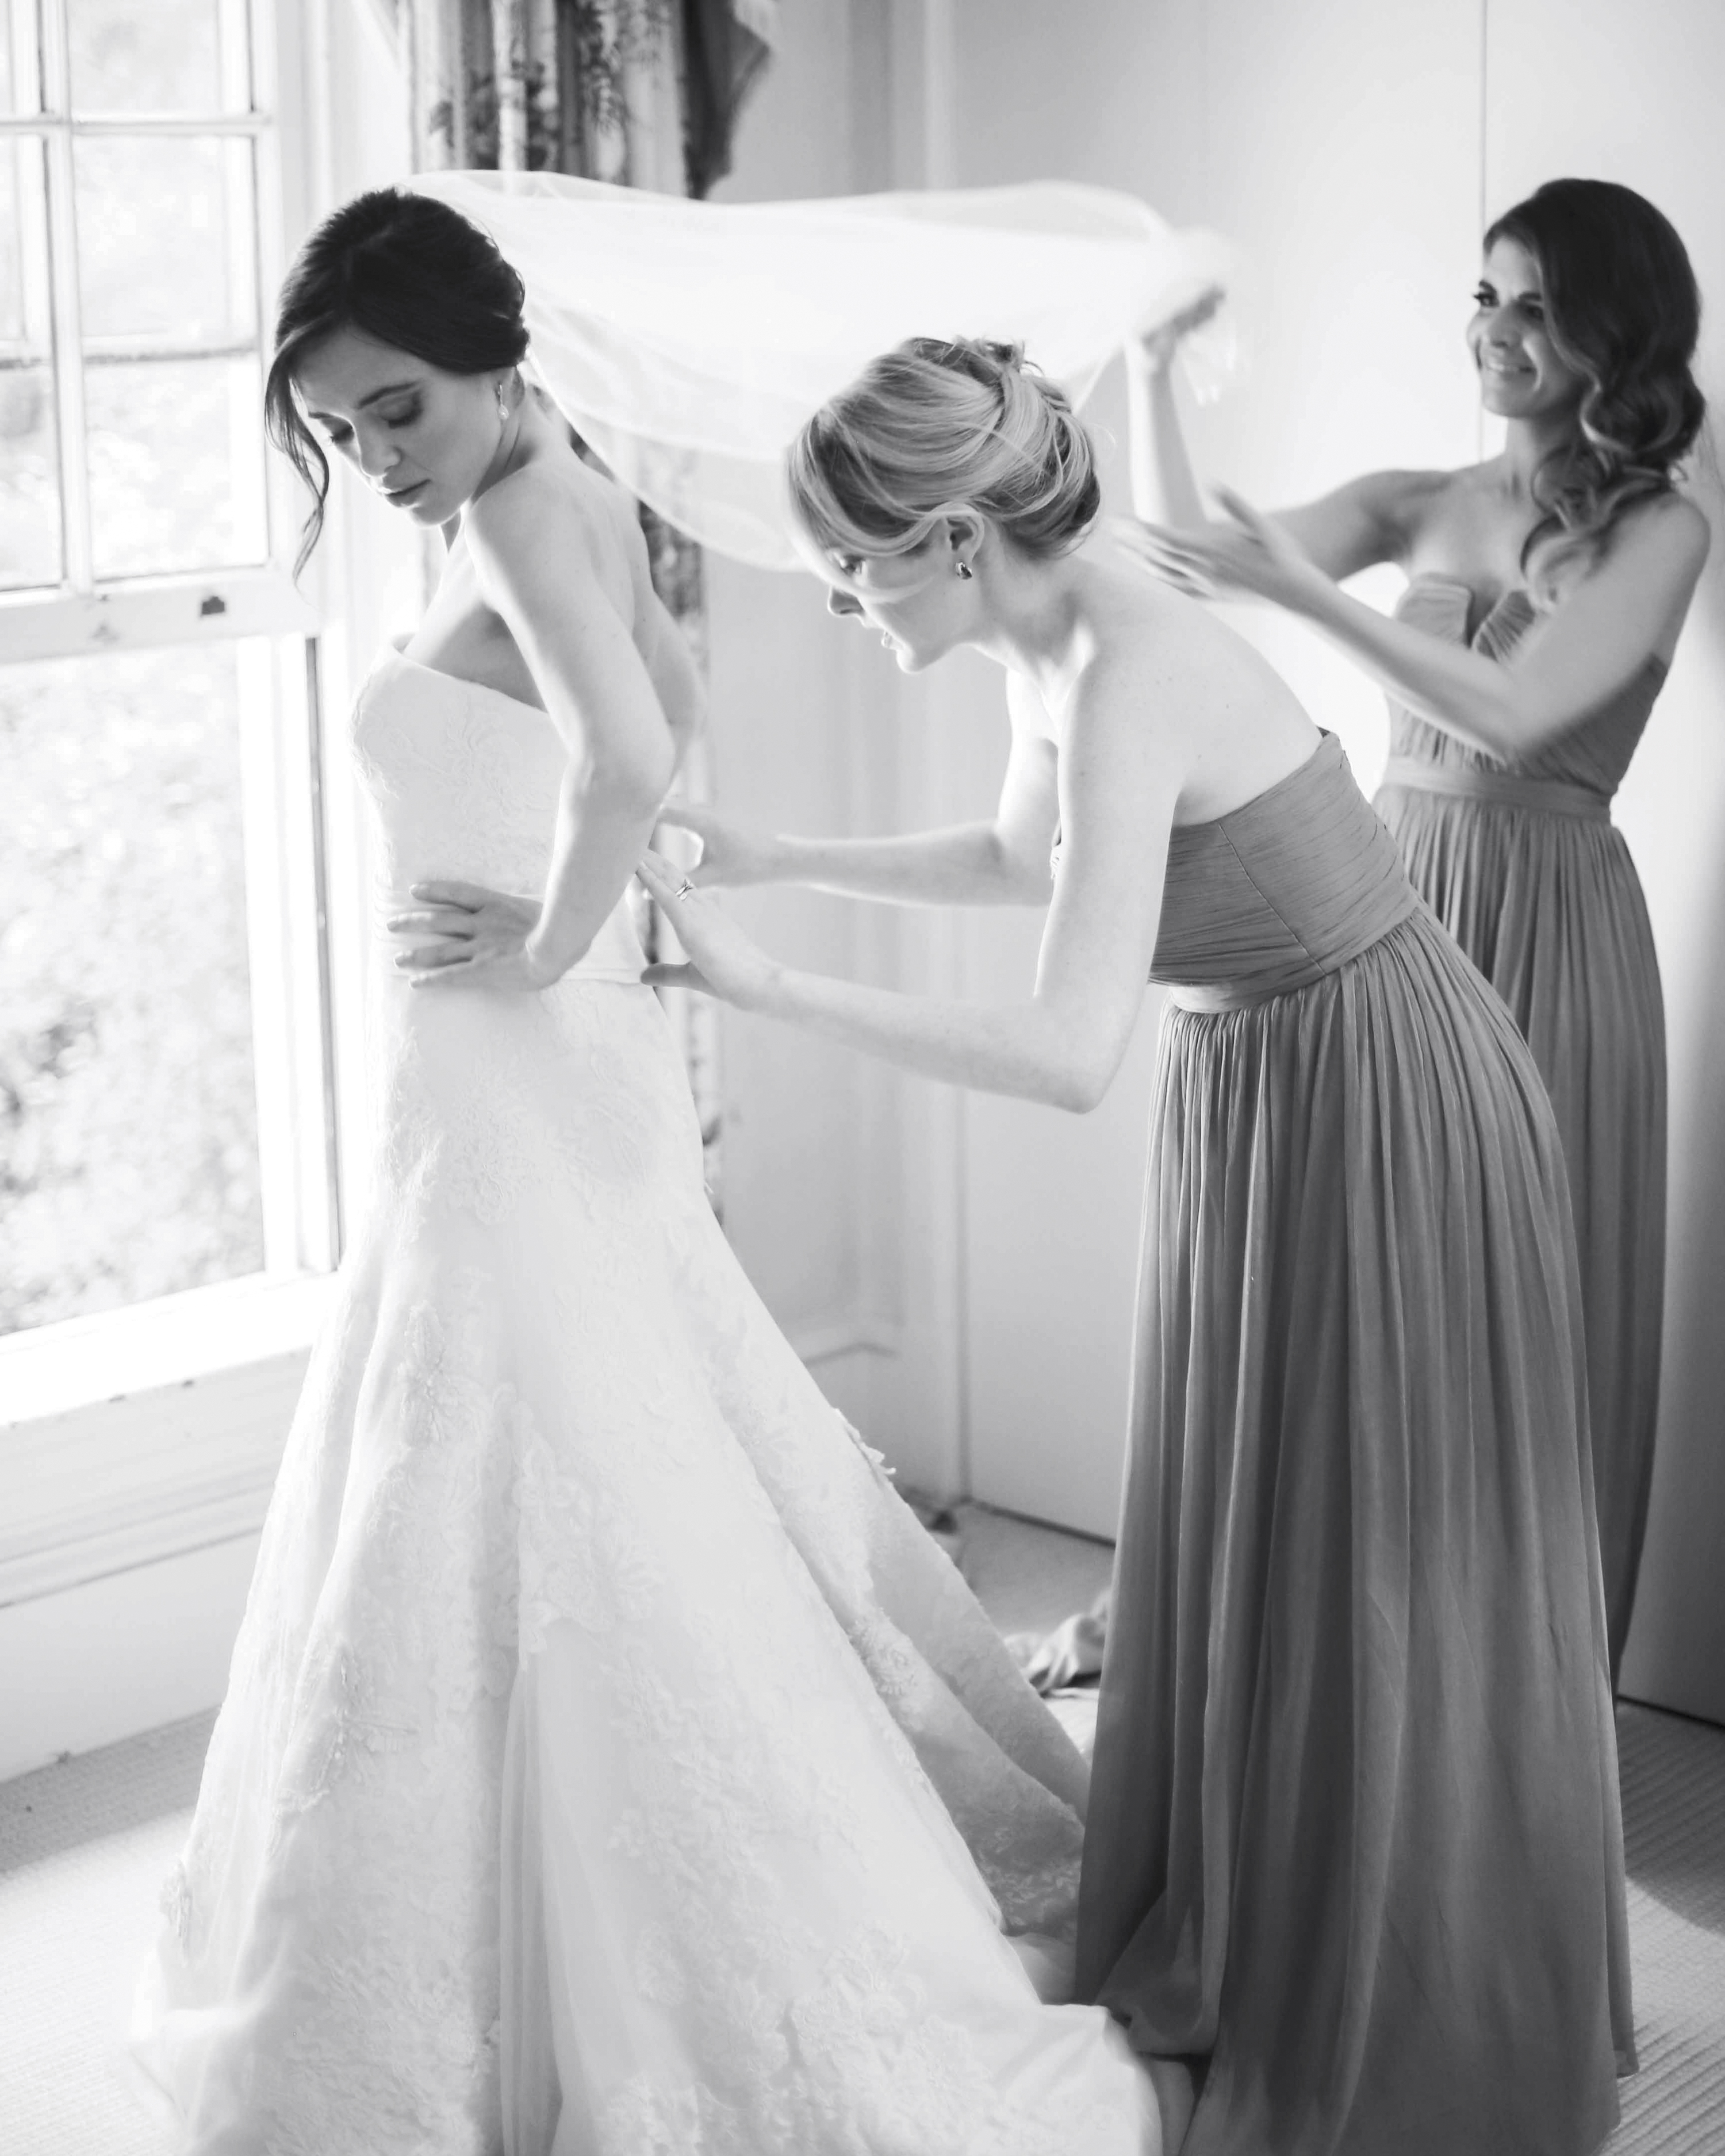 bride-bridesmaids-getting-ready-bw-0264eg5u9302-2902119575-o-mwds110788.jpg